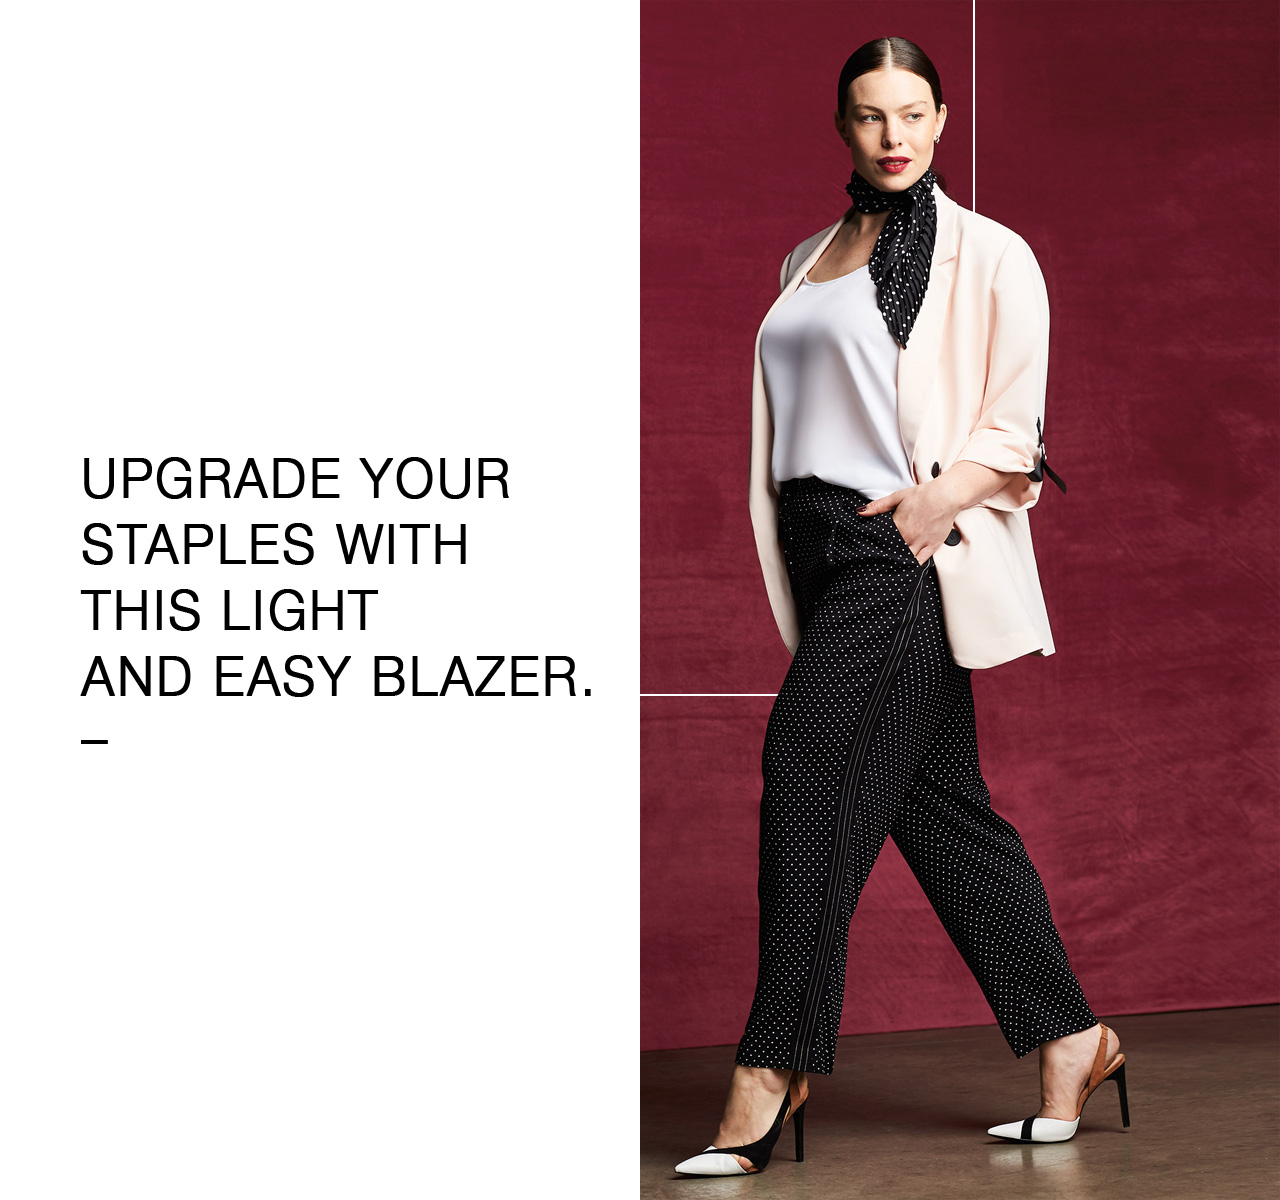 Upgrade your staples with this light and easy blazer.